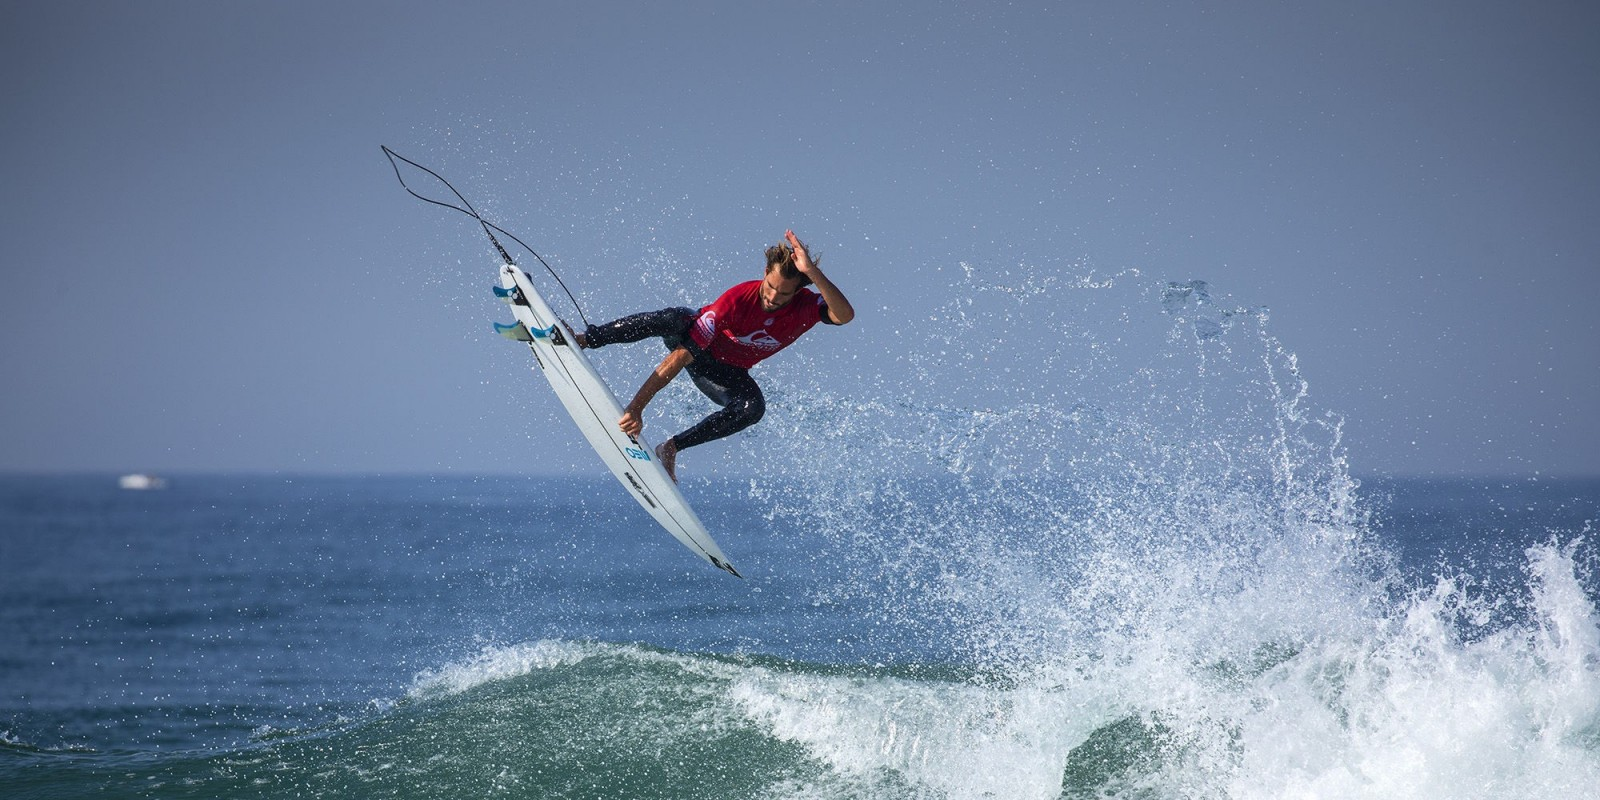 Frederico Morais at Quick Pro France